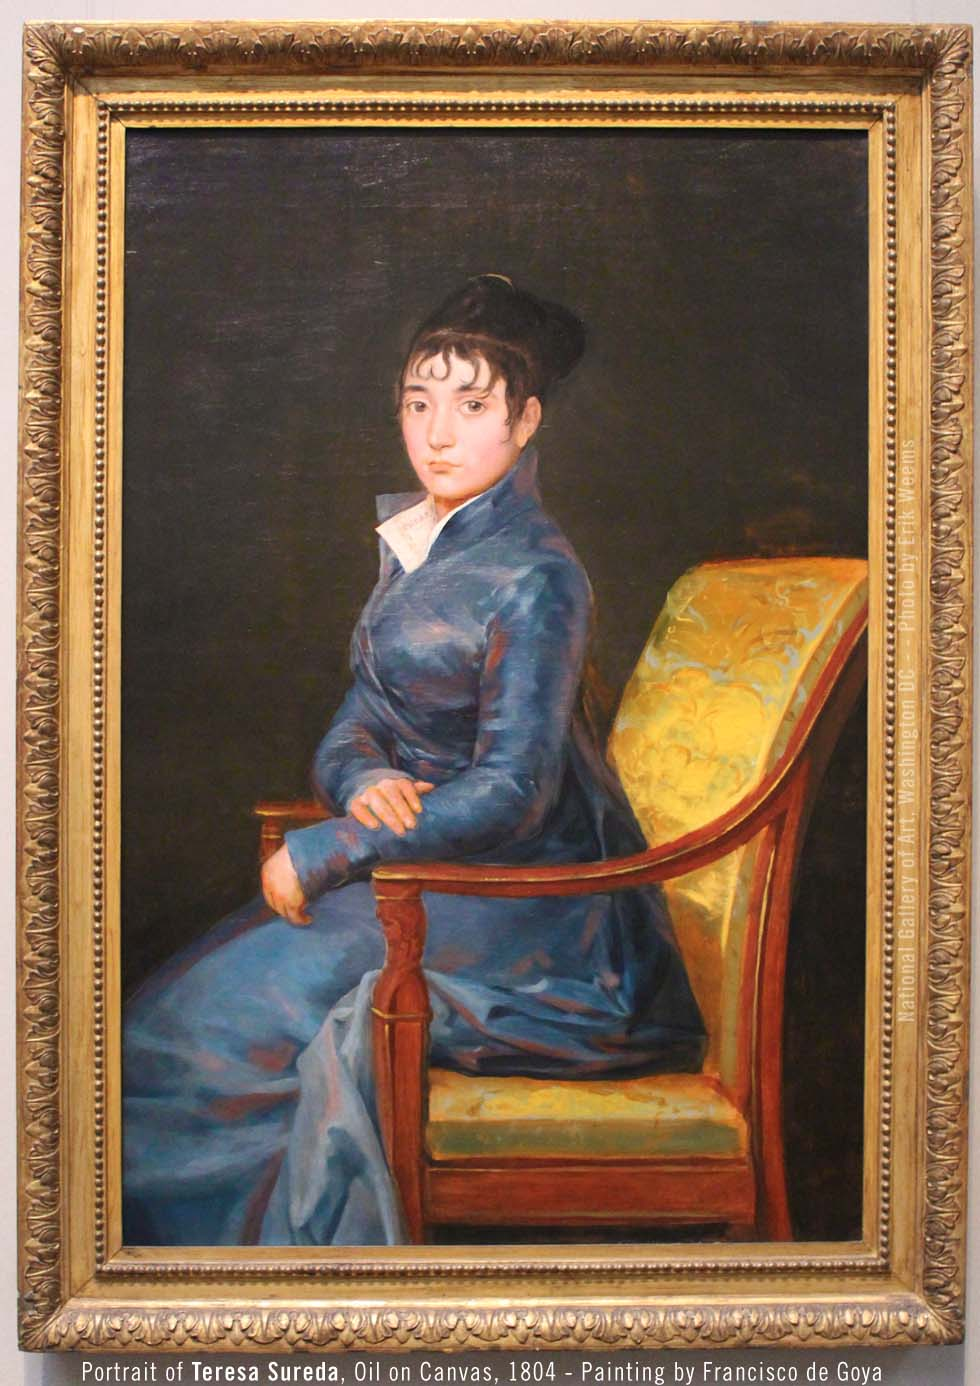 Teresa Sureda Portrait by Francisco de Goya 1804